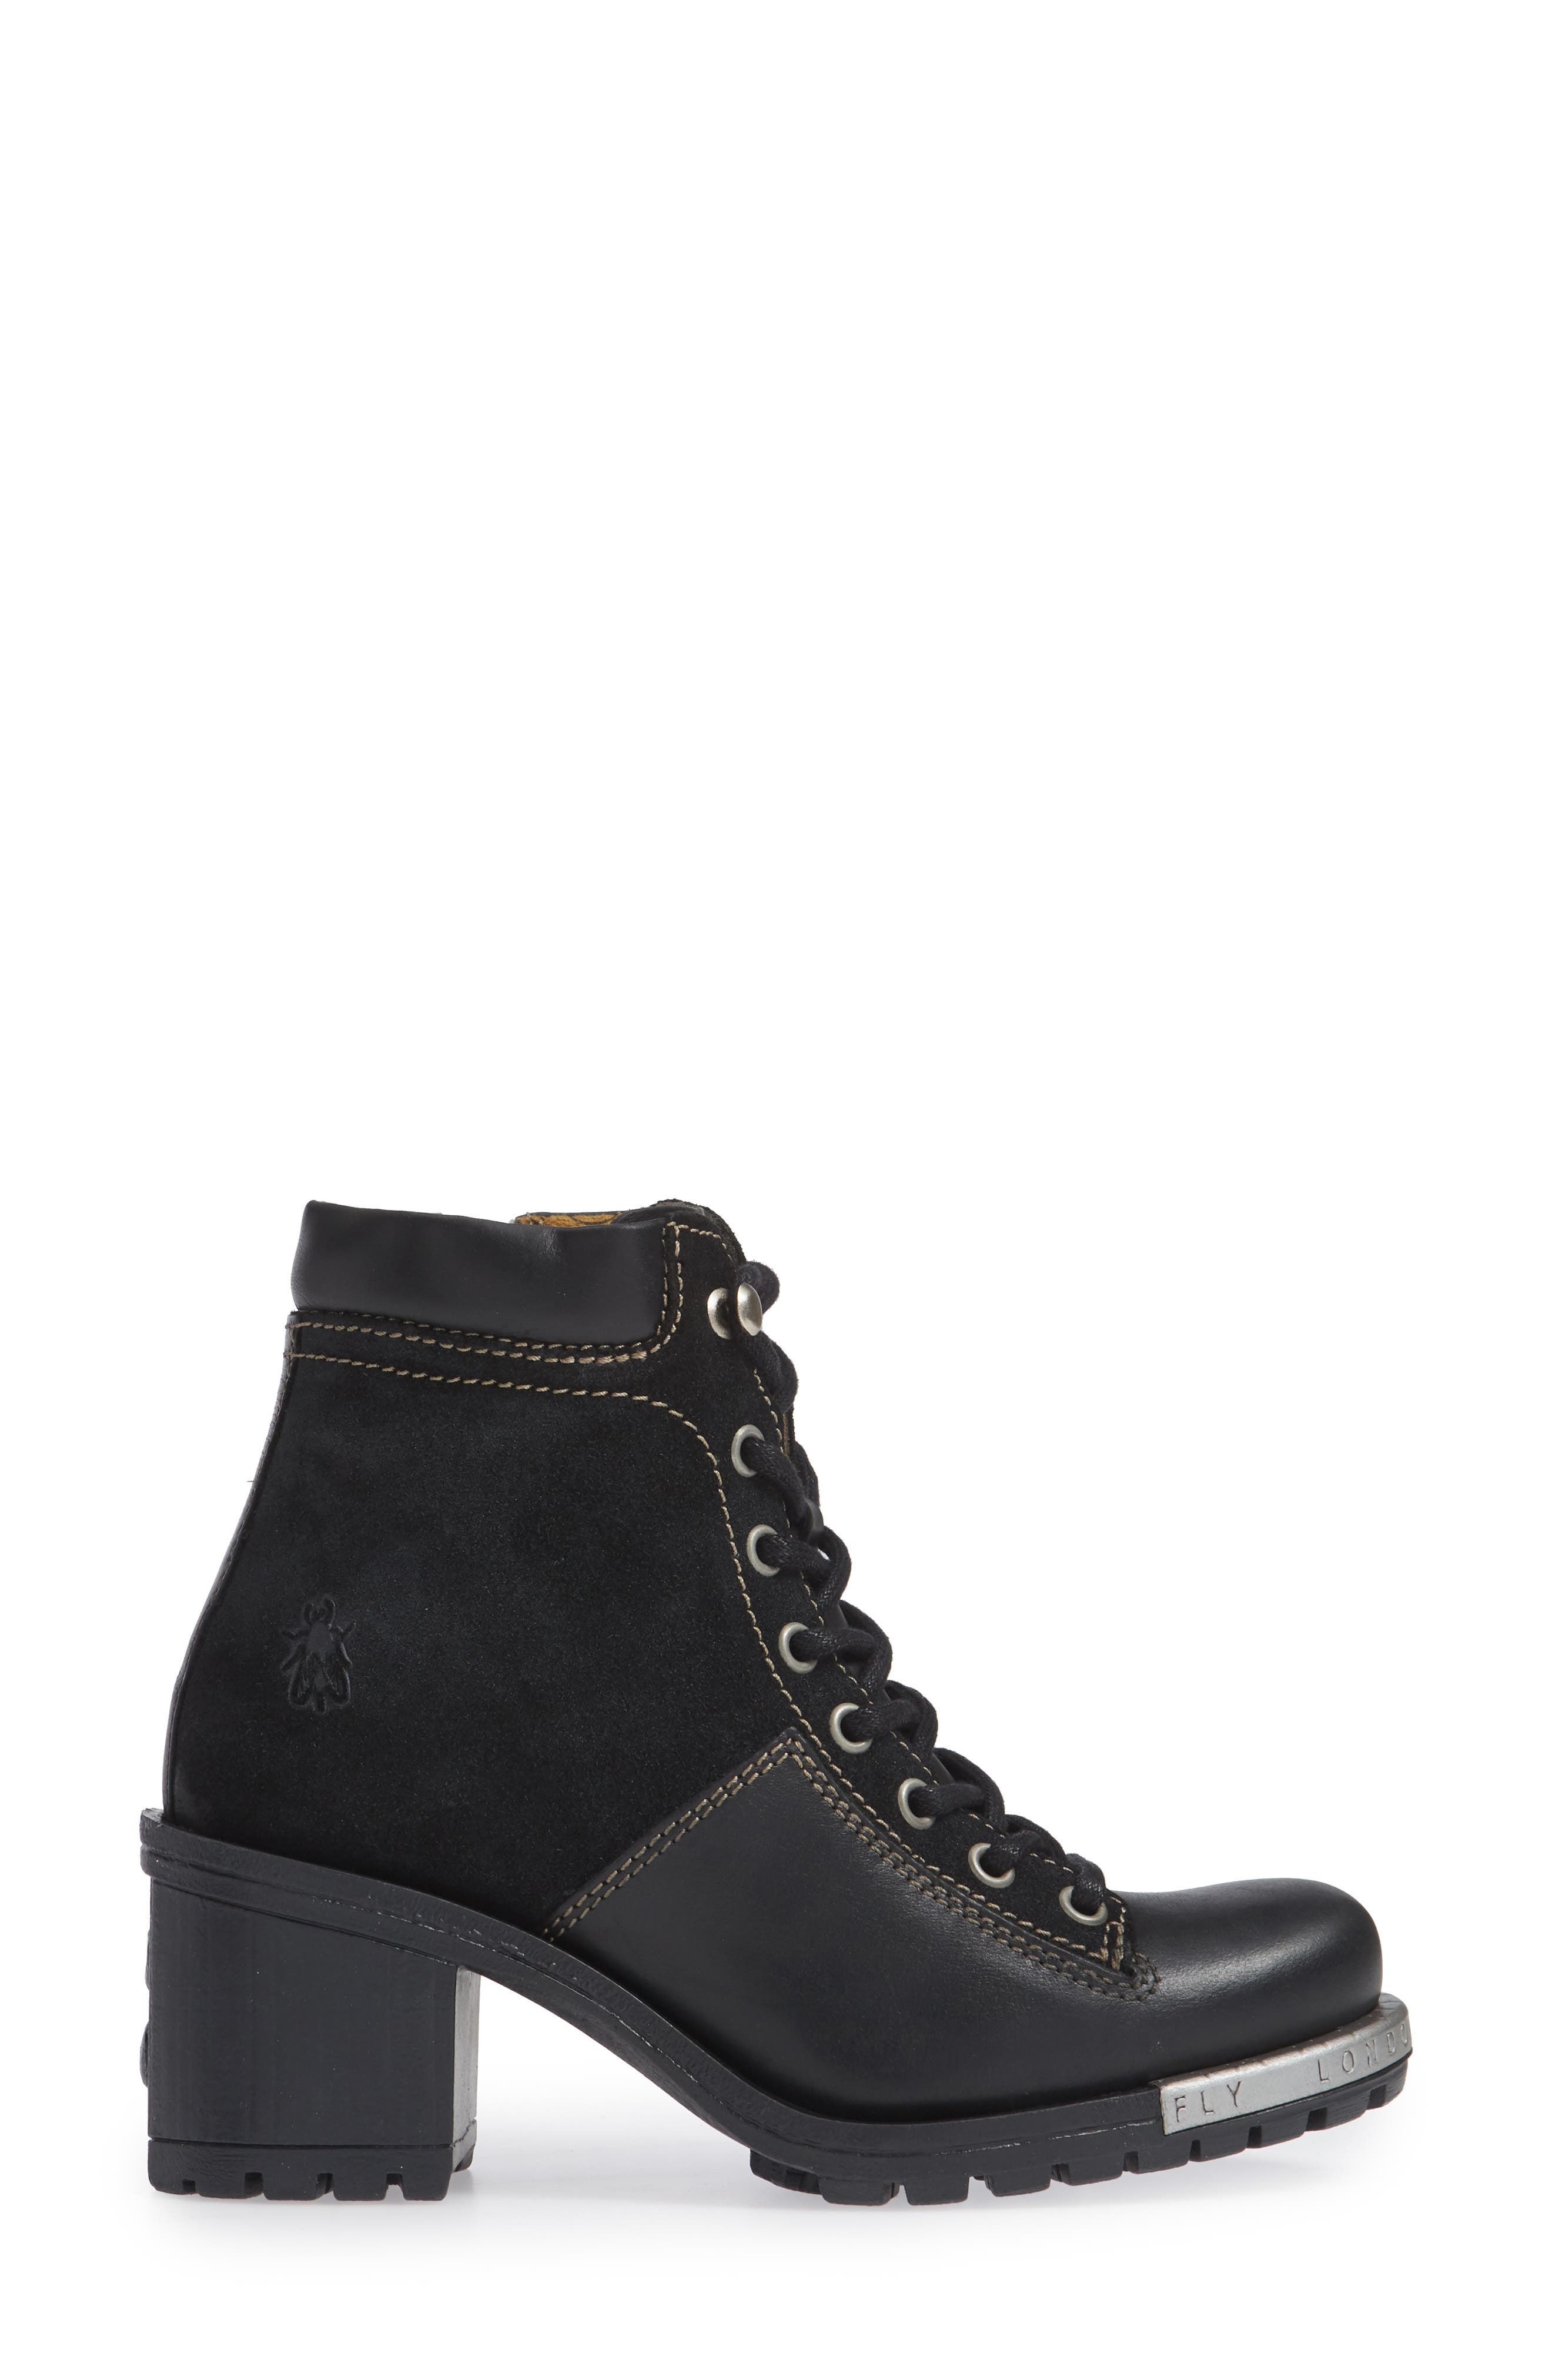 'Leal' Boot,                             Alternate thumbnail 3, color,                             BLACK/ ANTHRACITE